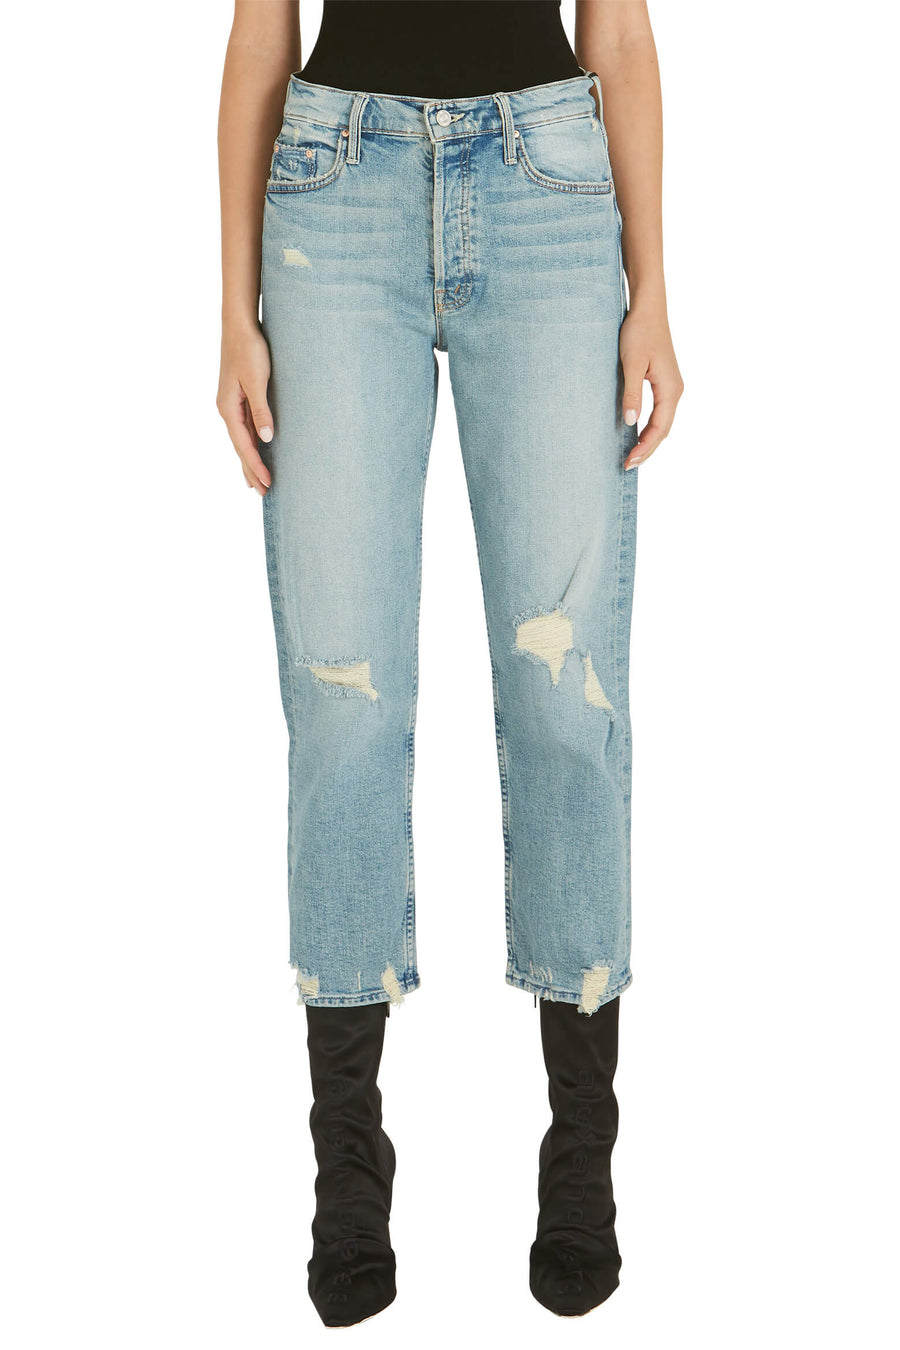 Mother Denim The Tomcat in The Confession from The New Trend  Edit alt text